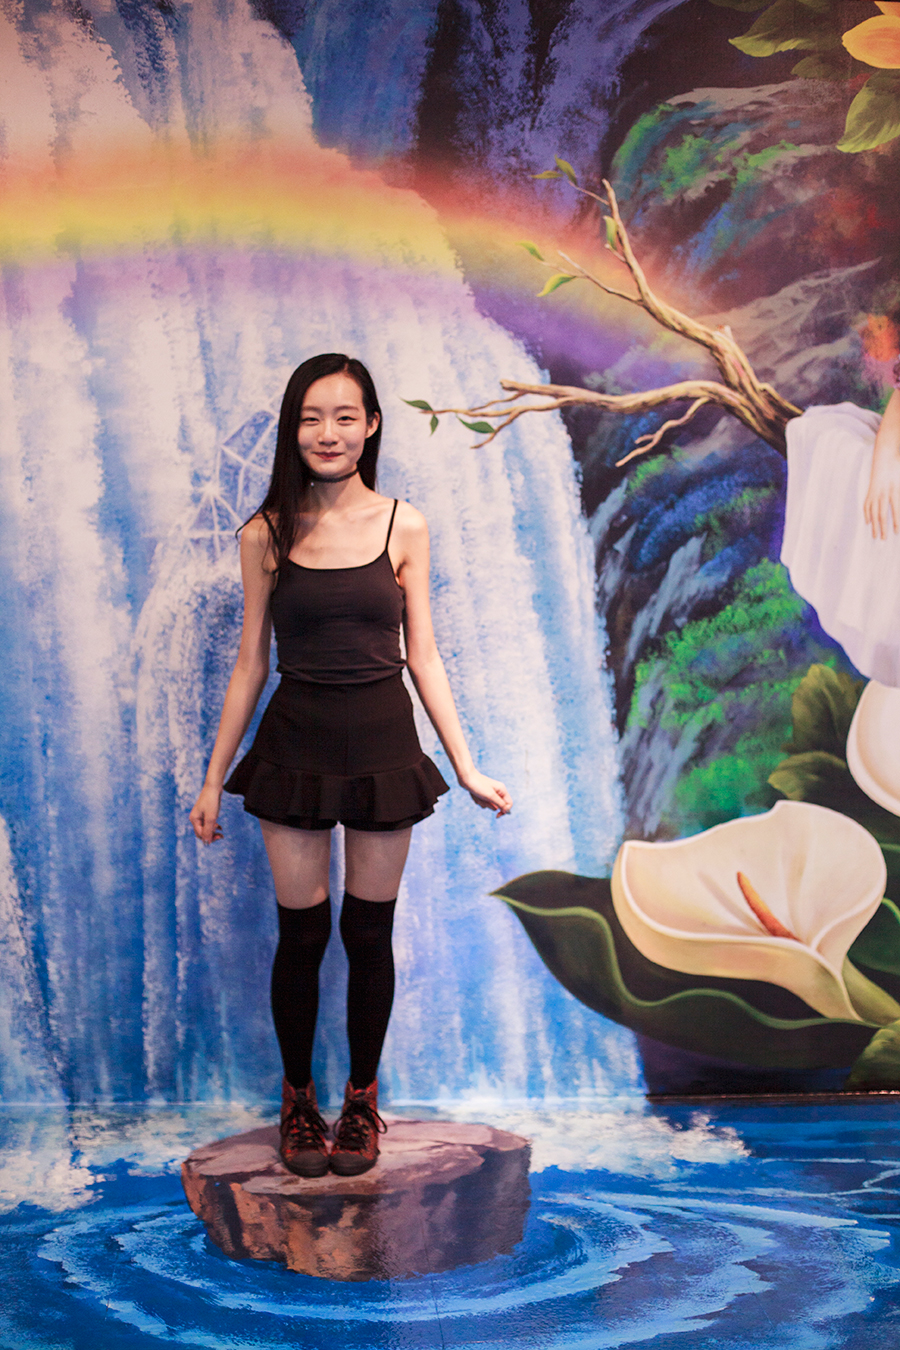 Standing on a log in front of a fairytale scene trompe-l'œil at the Trick Eye Museum Renewal Event in Singapore, Resorts World Sentosa.